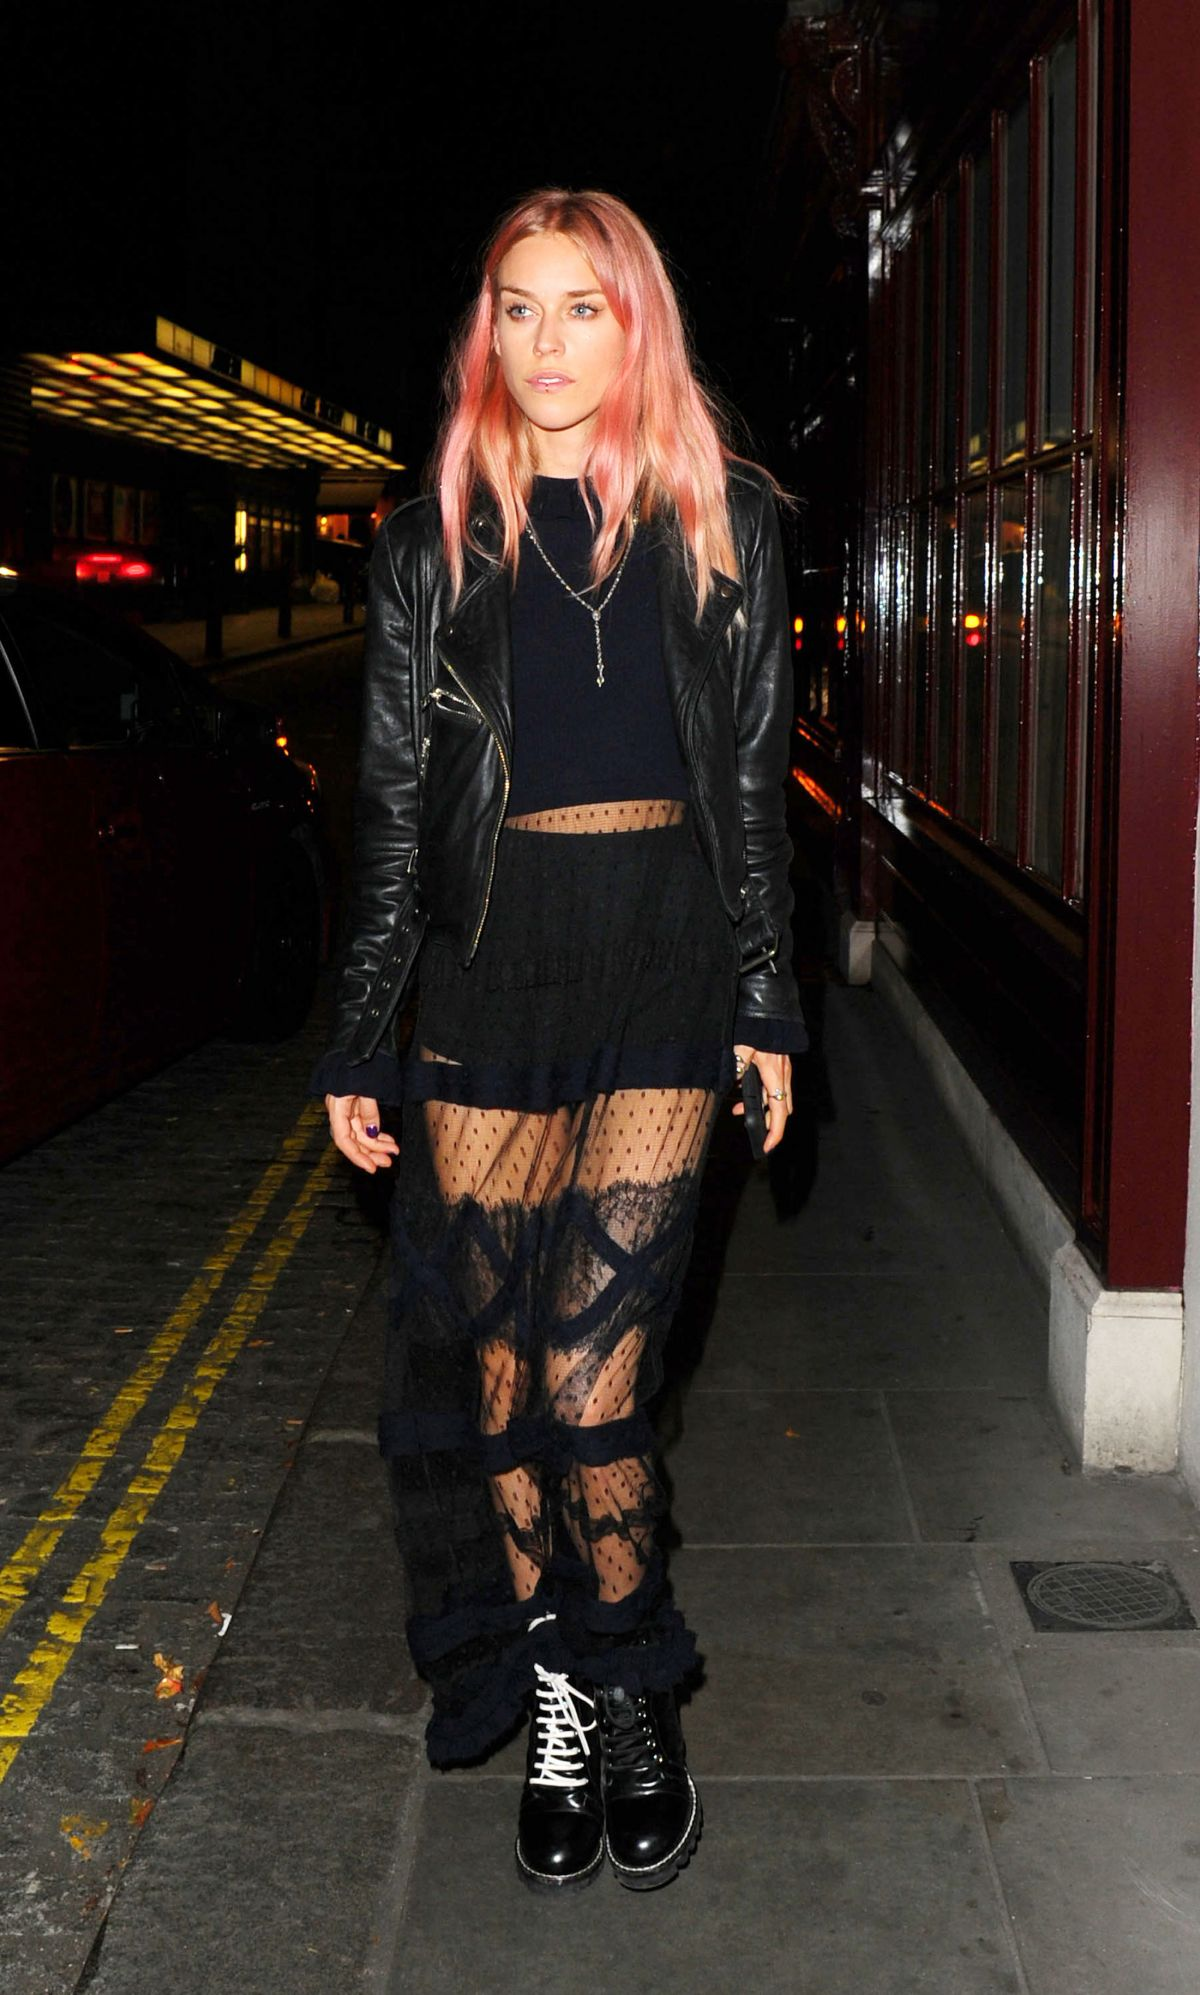 MARY OLIVIA CHARTERIS at Lou Lou